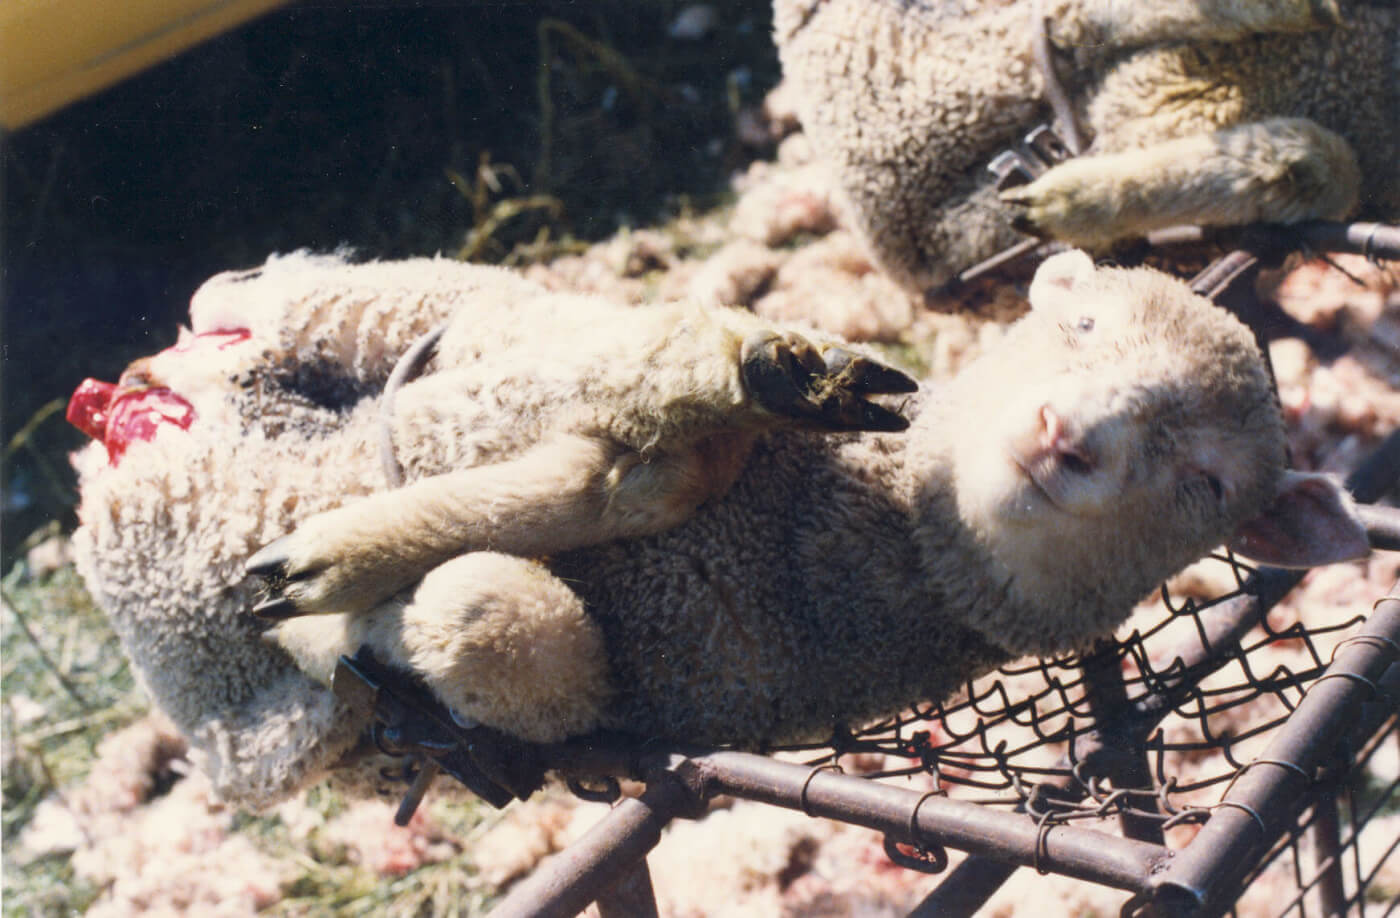 2013 – 50 Retailers Phase Out Mulesing